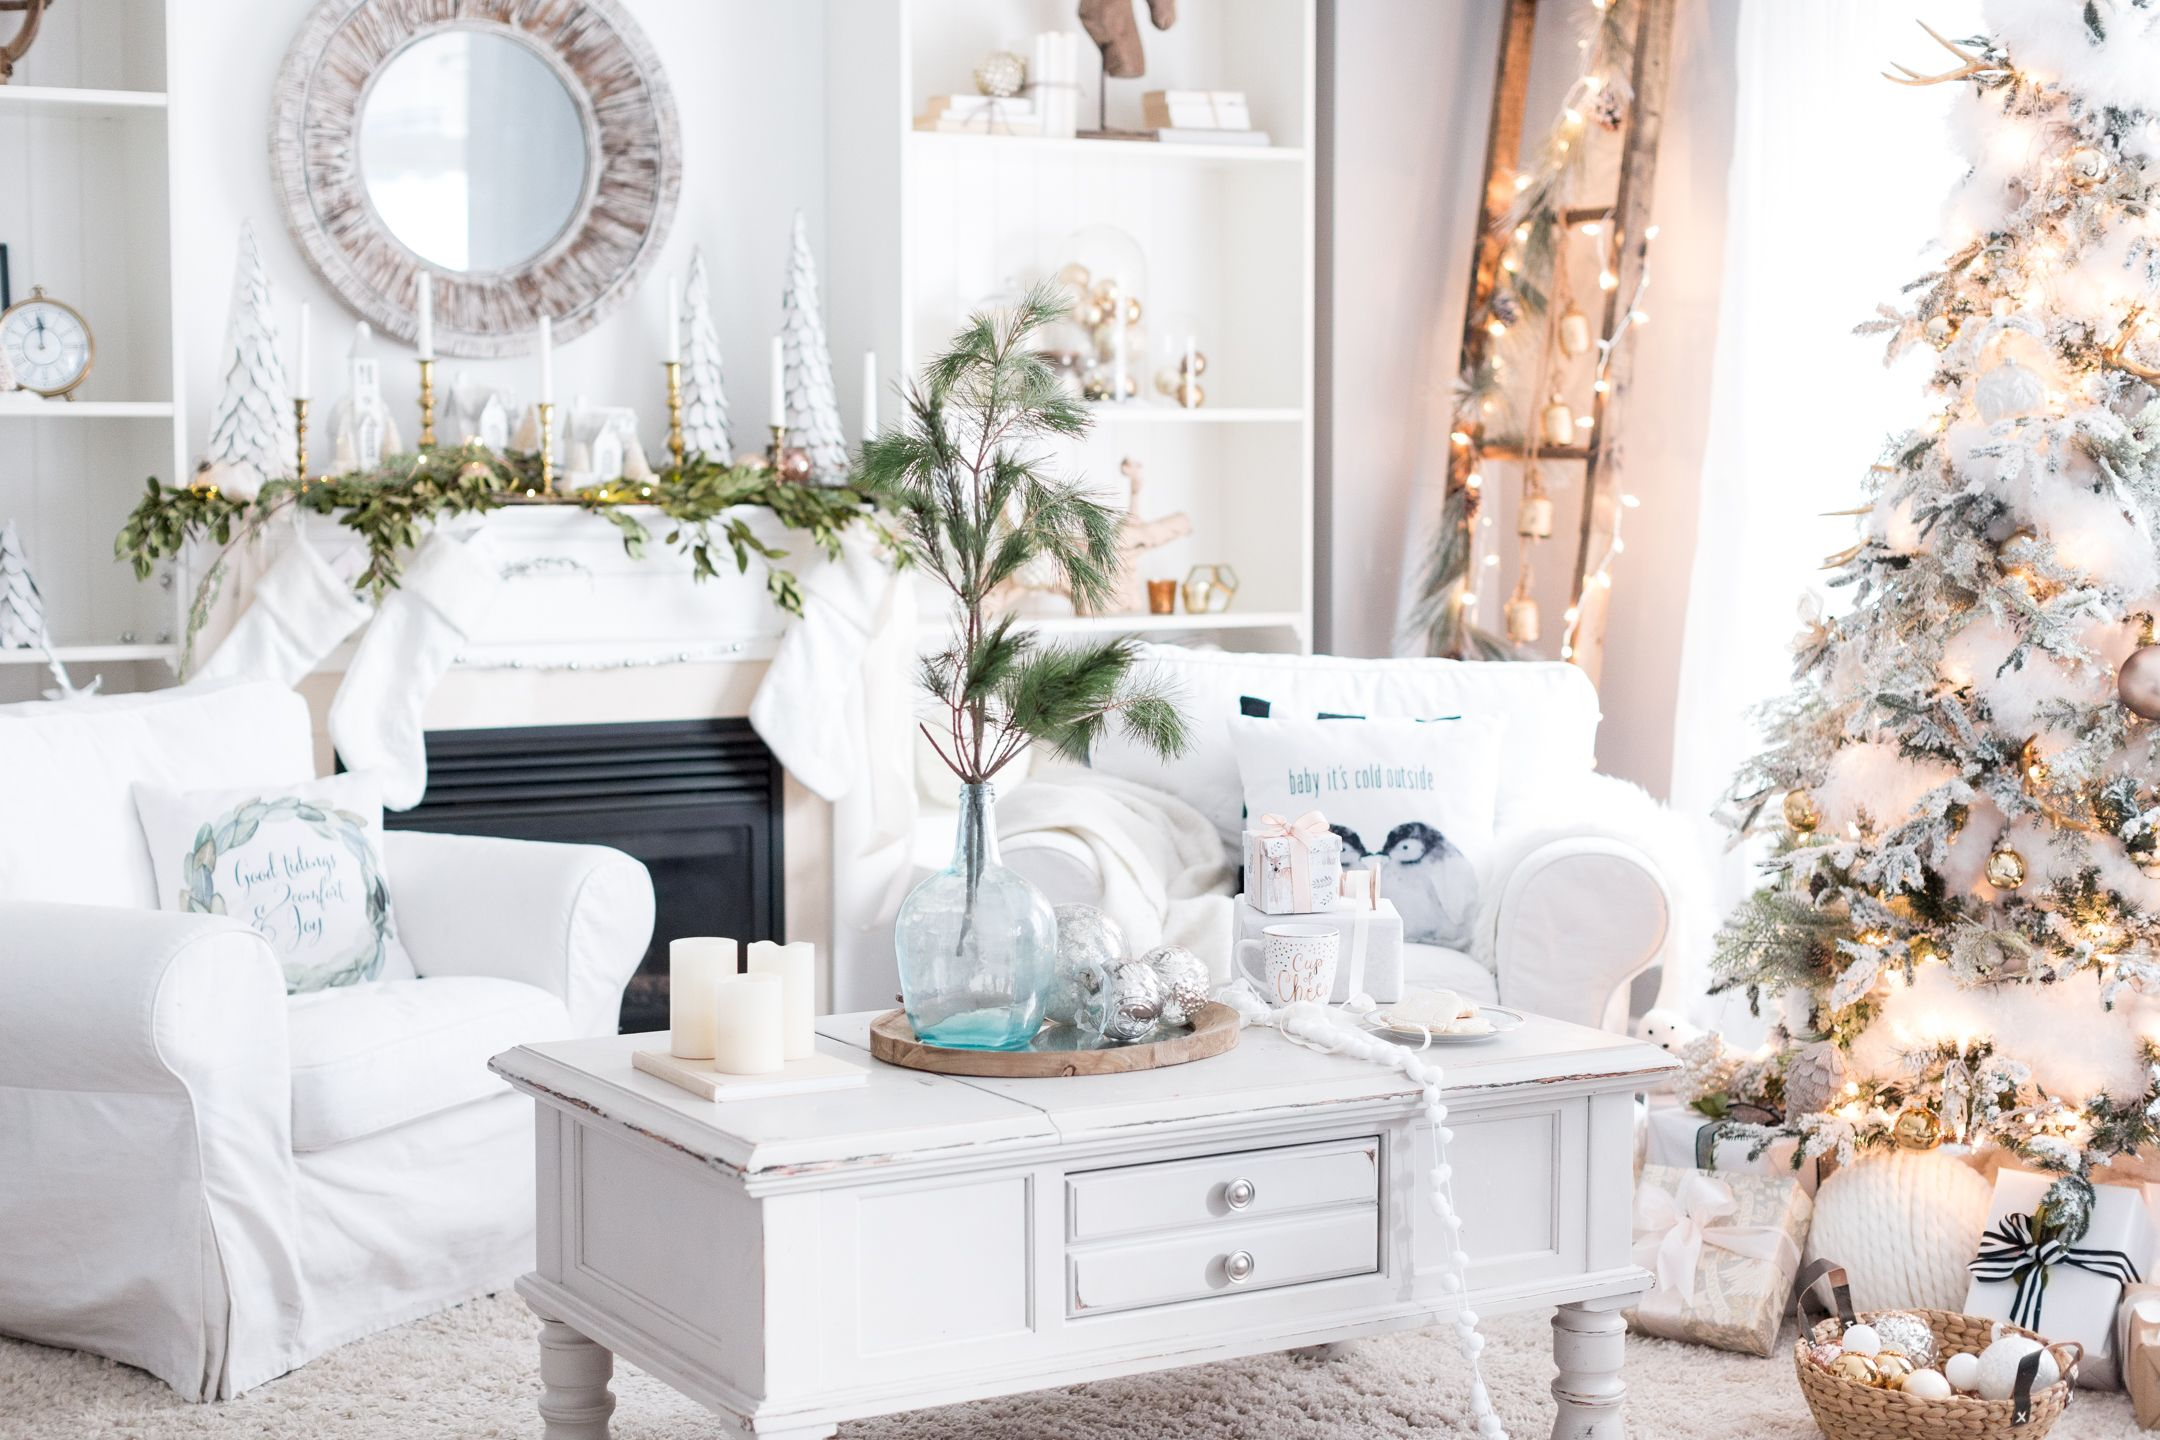 Awesome Holiday Decor Small Space Amazing Ideas